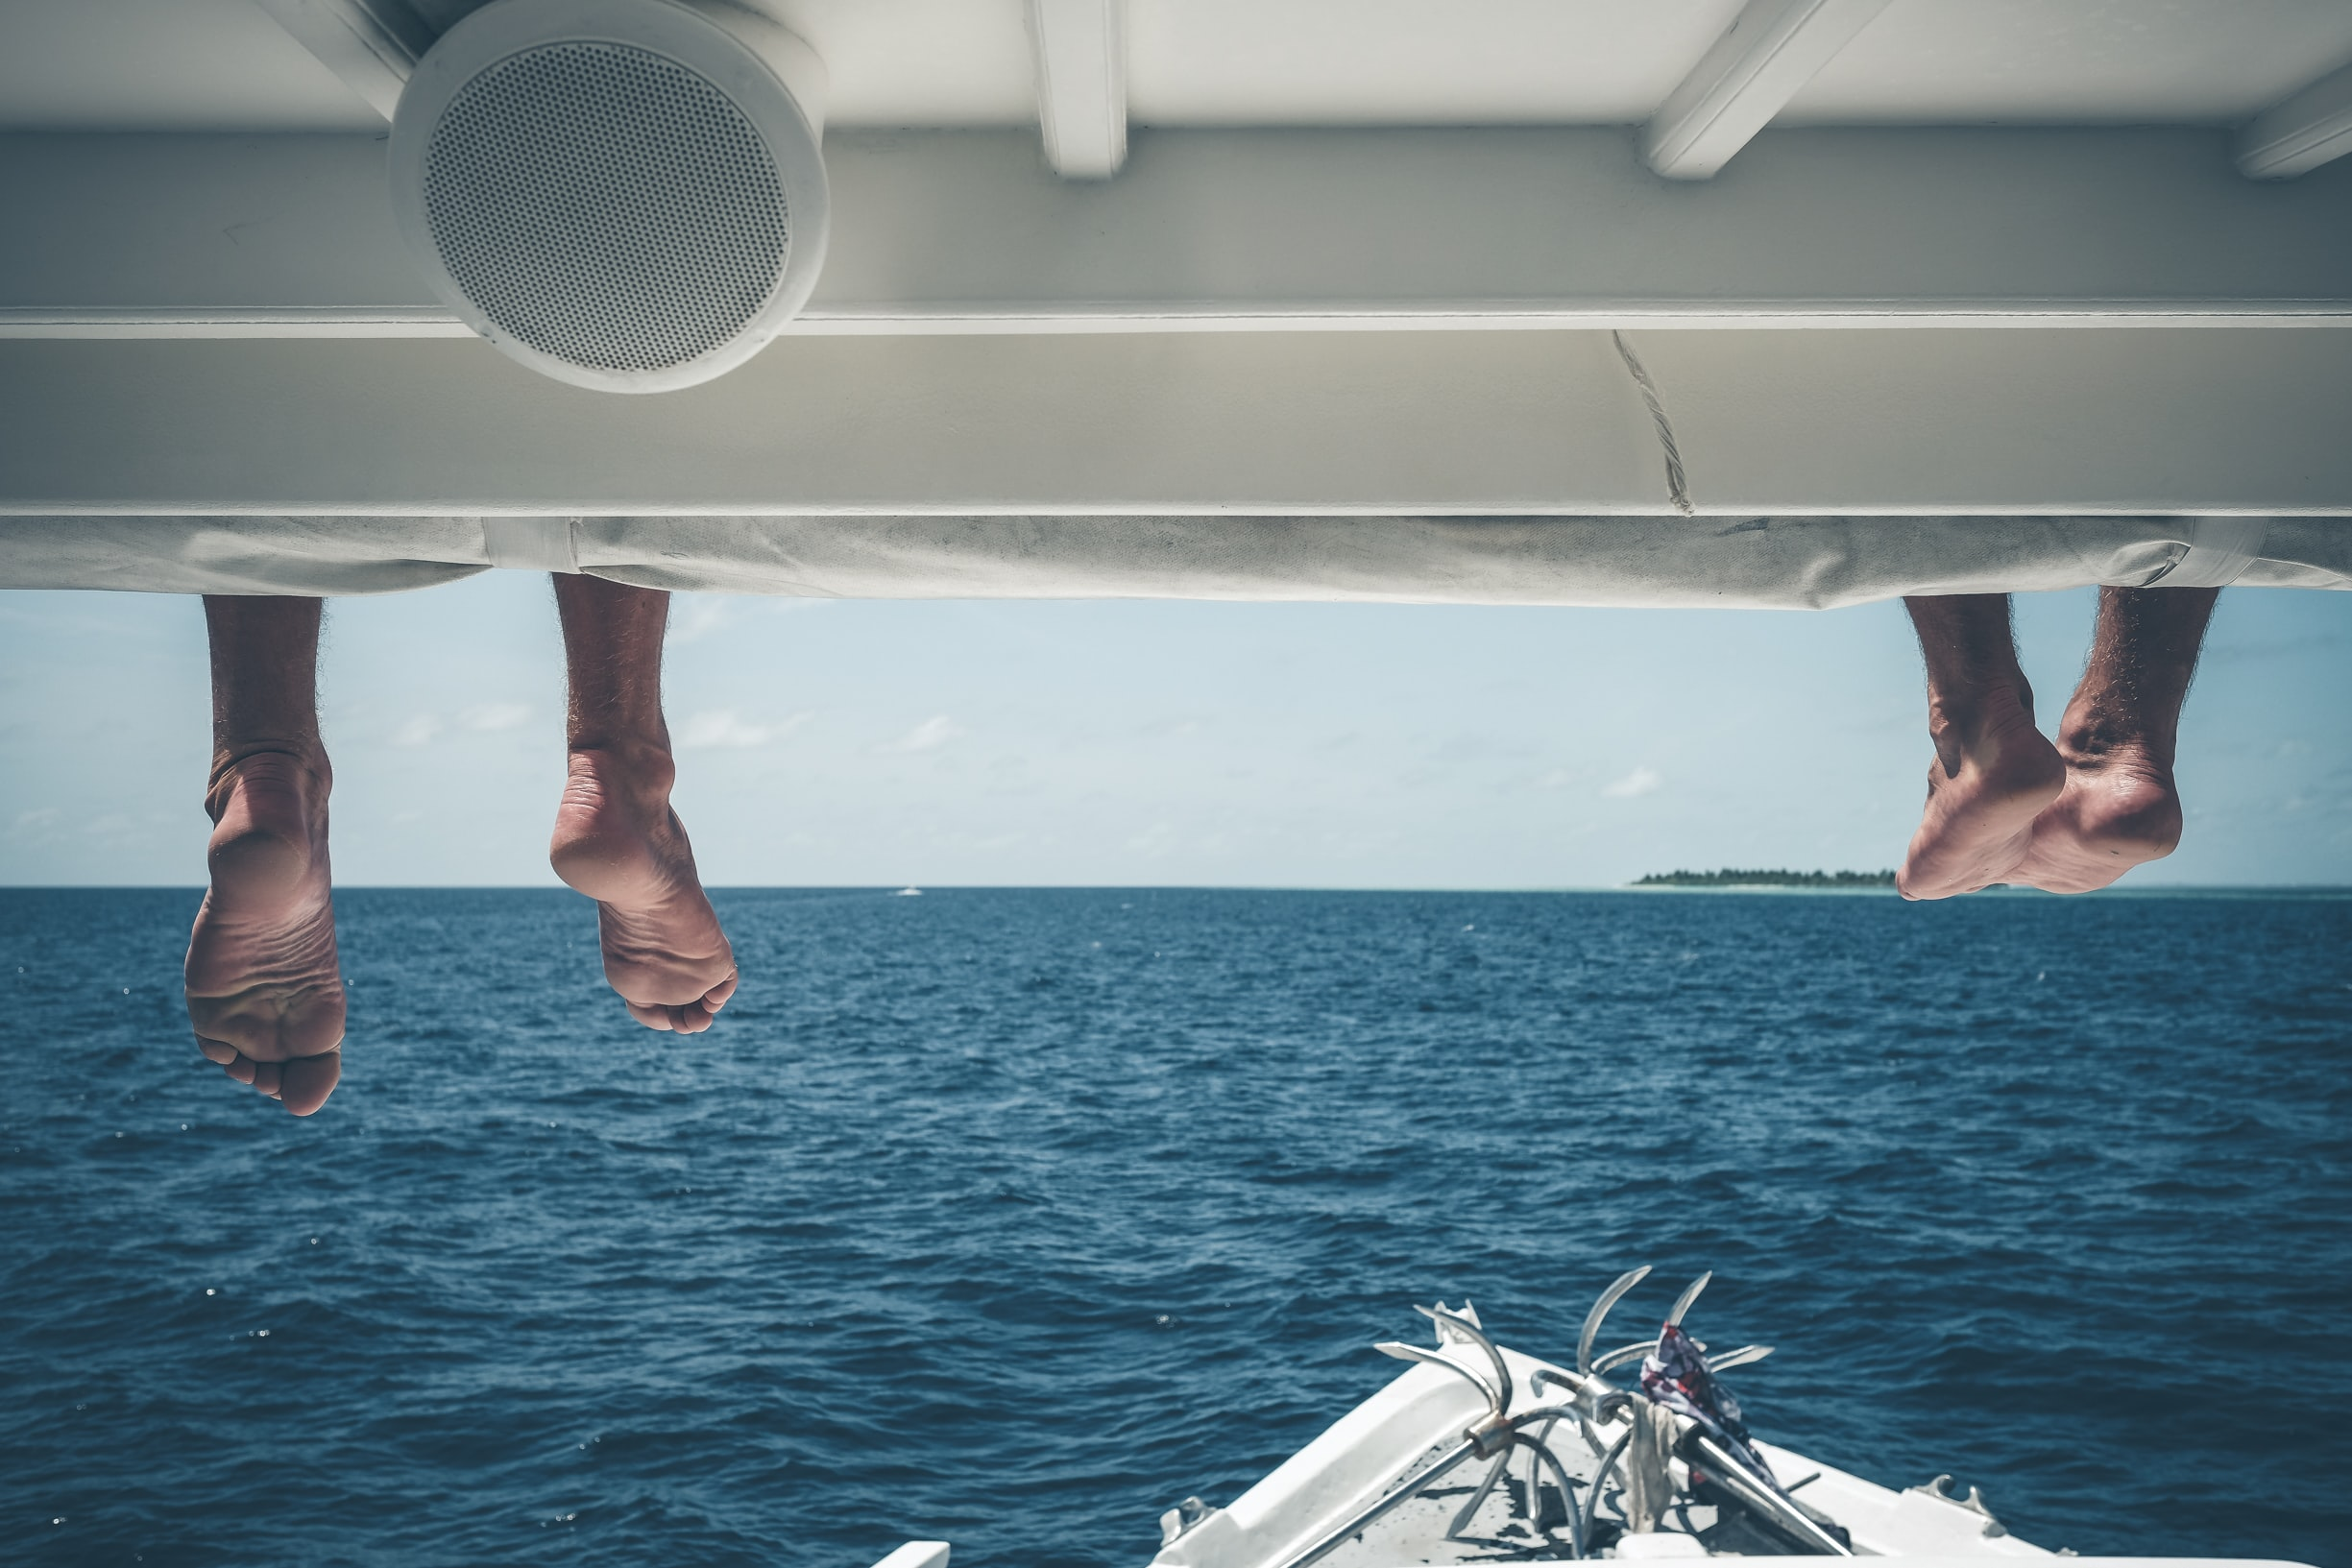 two person on powerboat deck